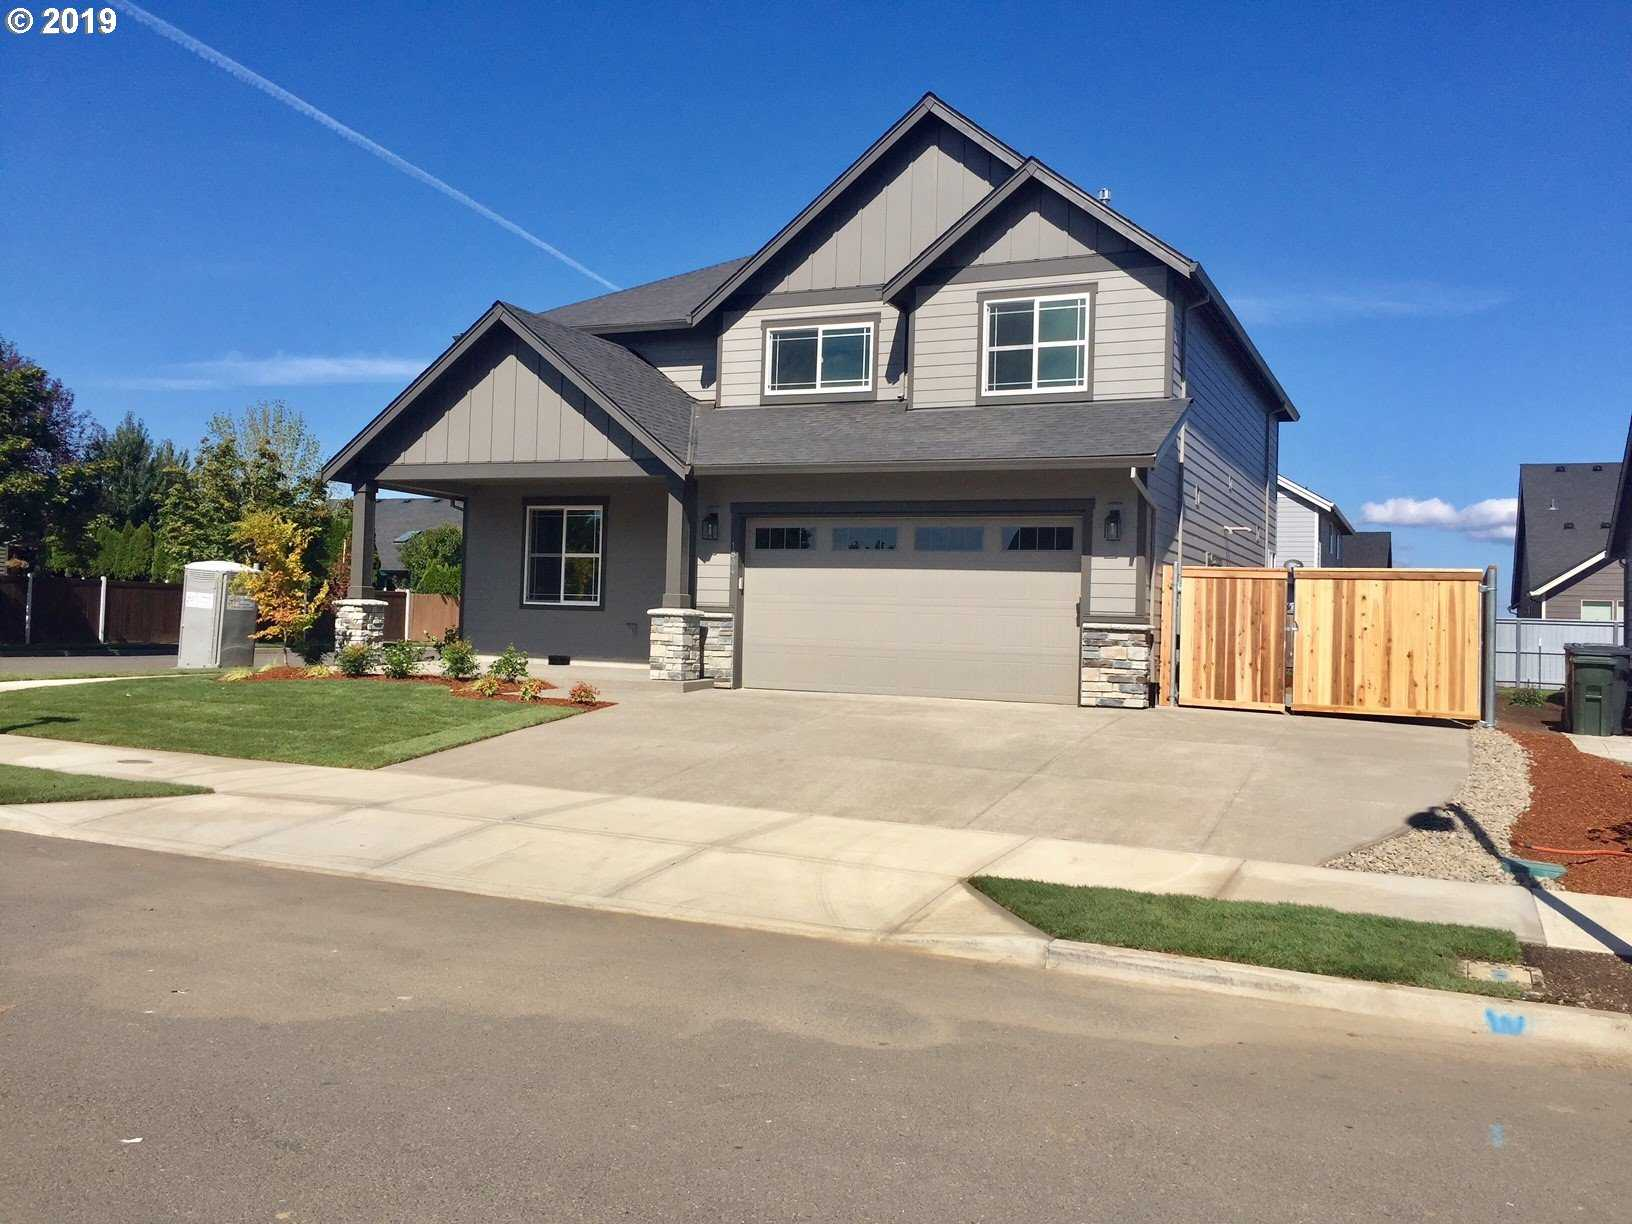 $499,000 - 4Br/3Ba -  for Sale in Canby